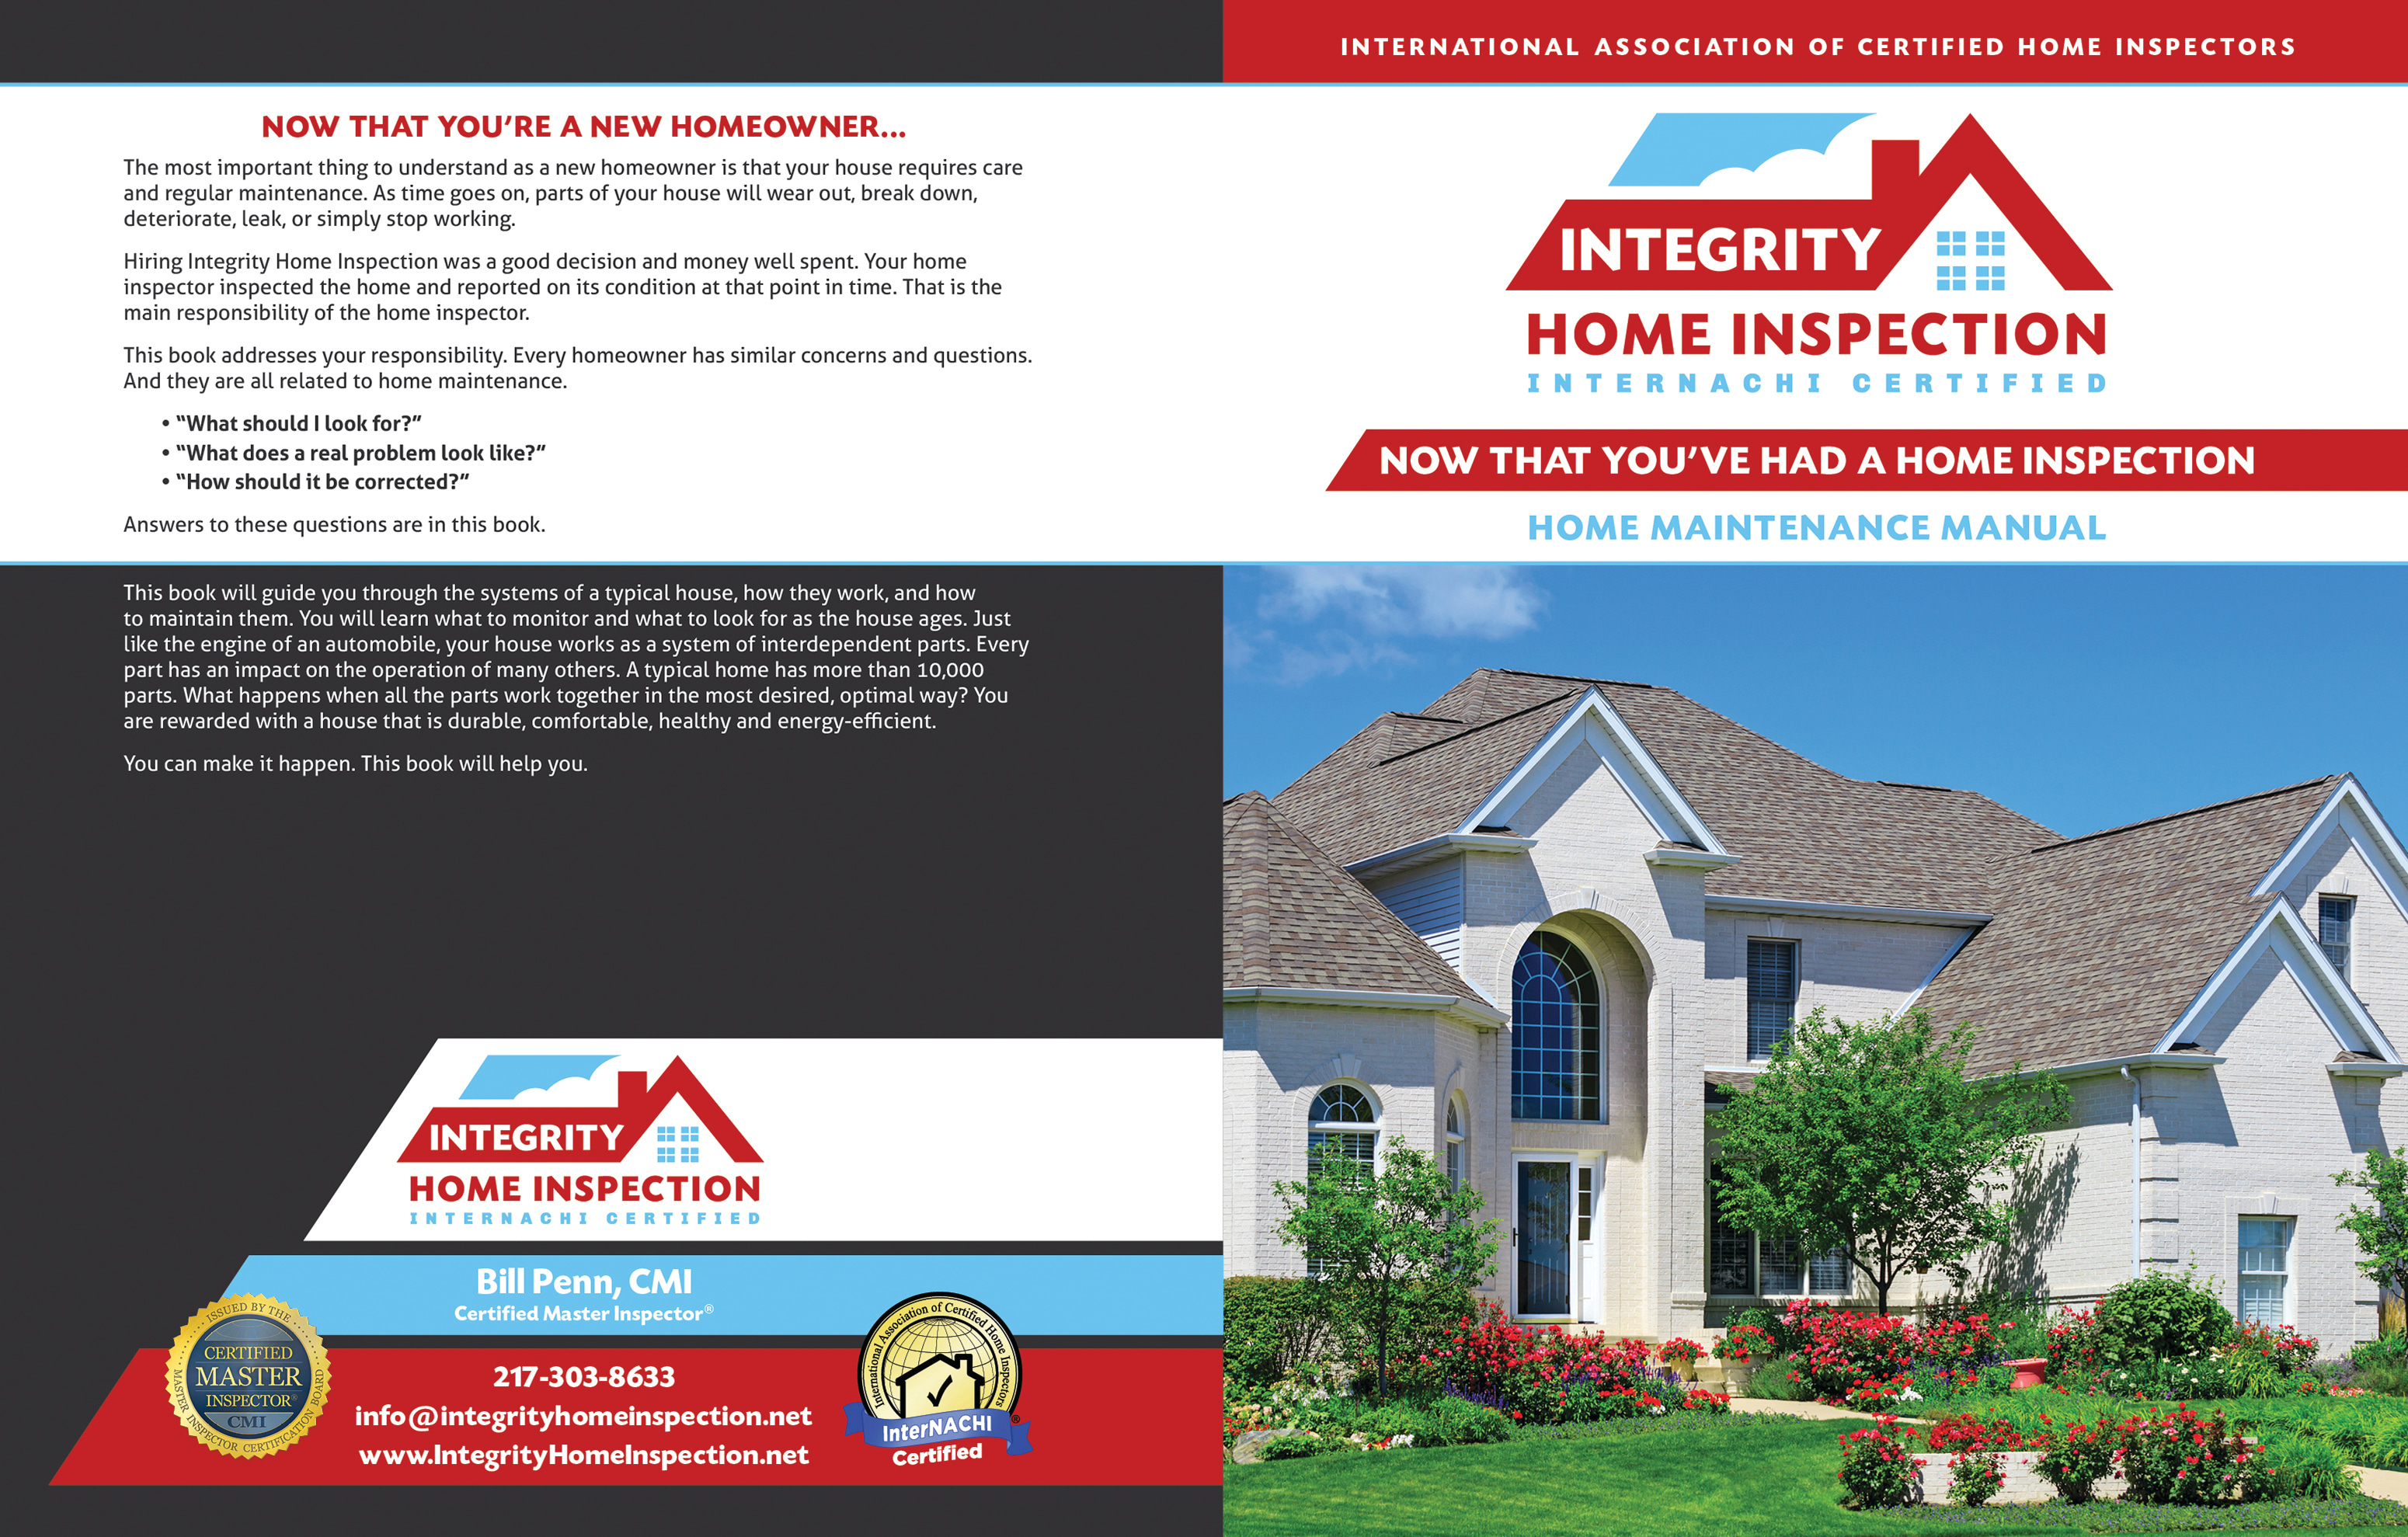 custom home maintenance book for integrity home inspections  - inspection gallery